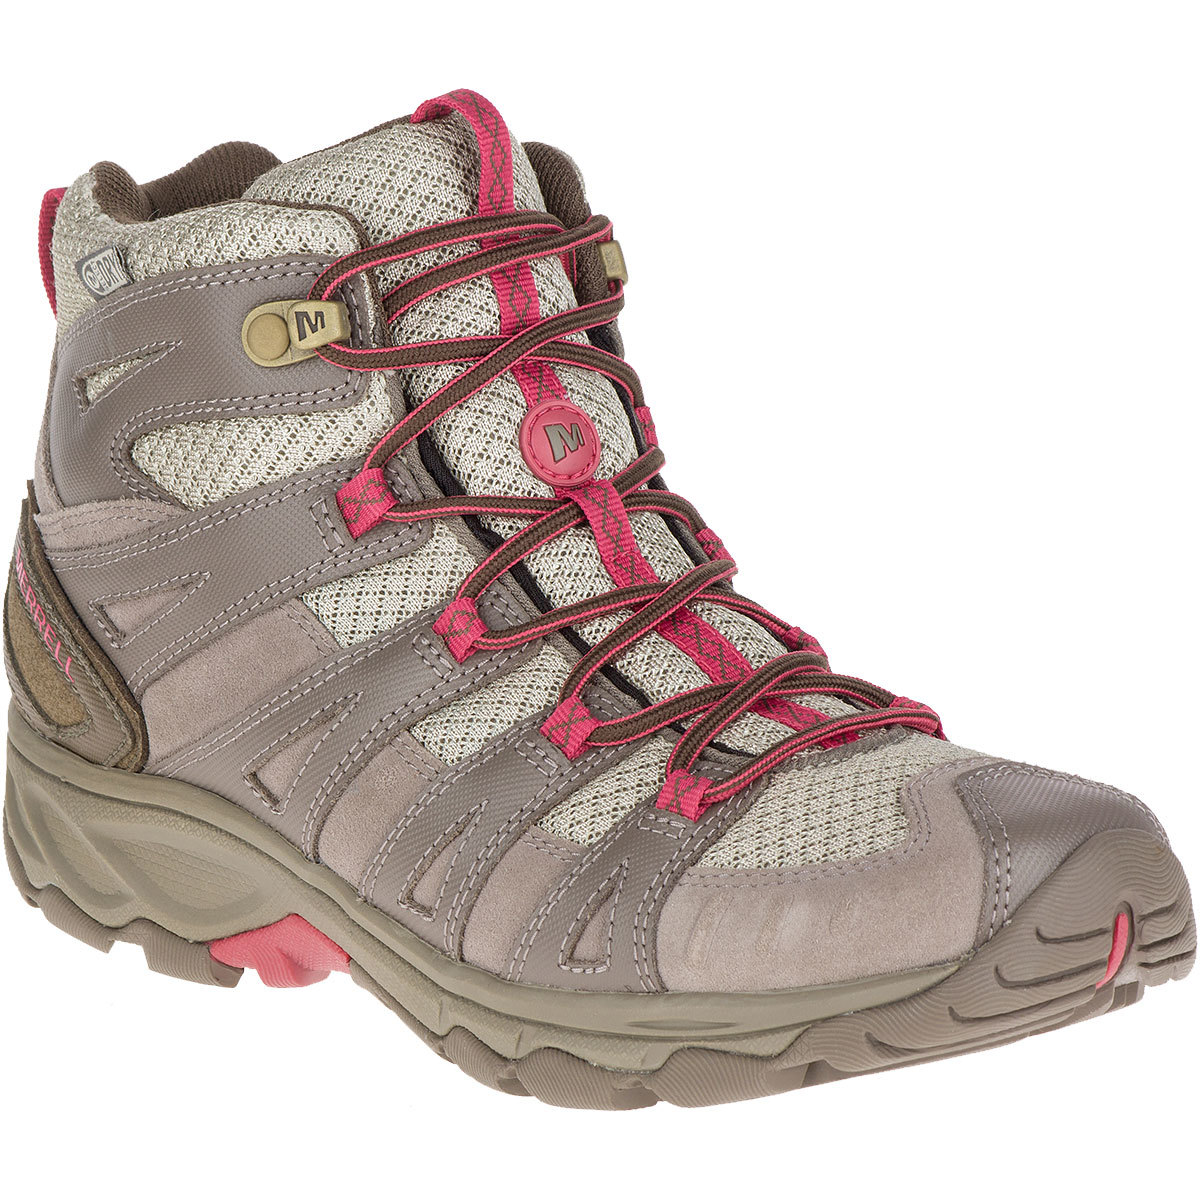 Merrell Women's Avian Light 2 Ventilator Mid Waterproof Hiking Boots - Brown, 8